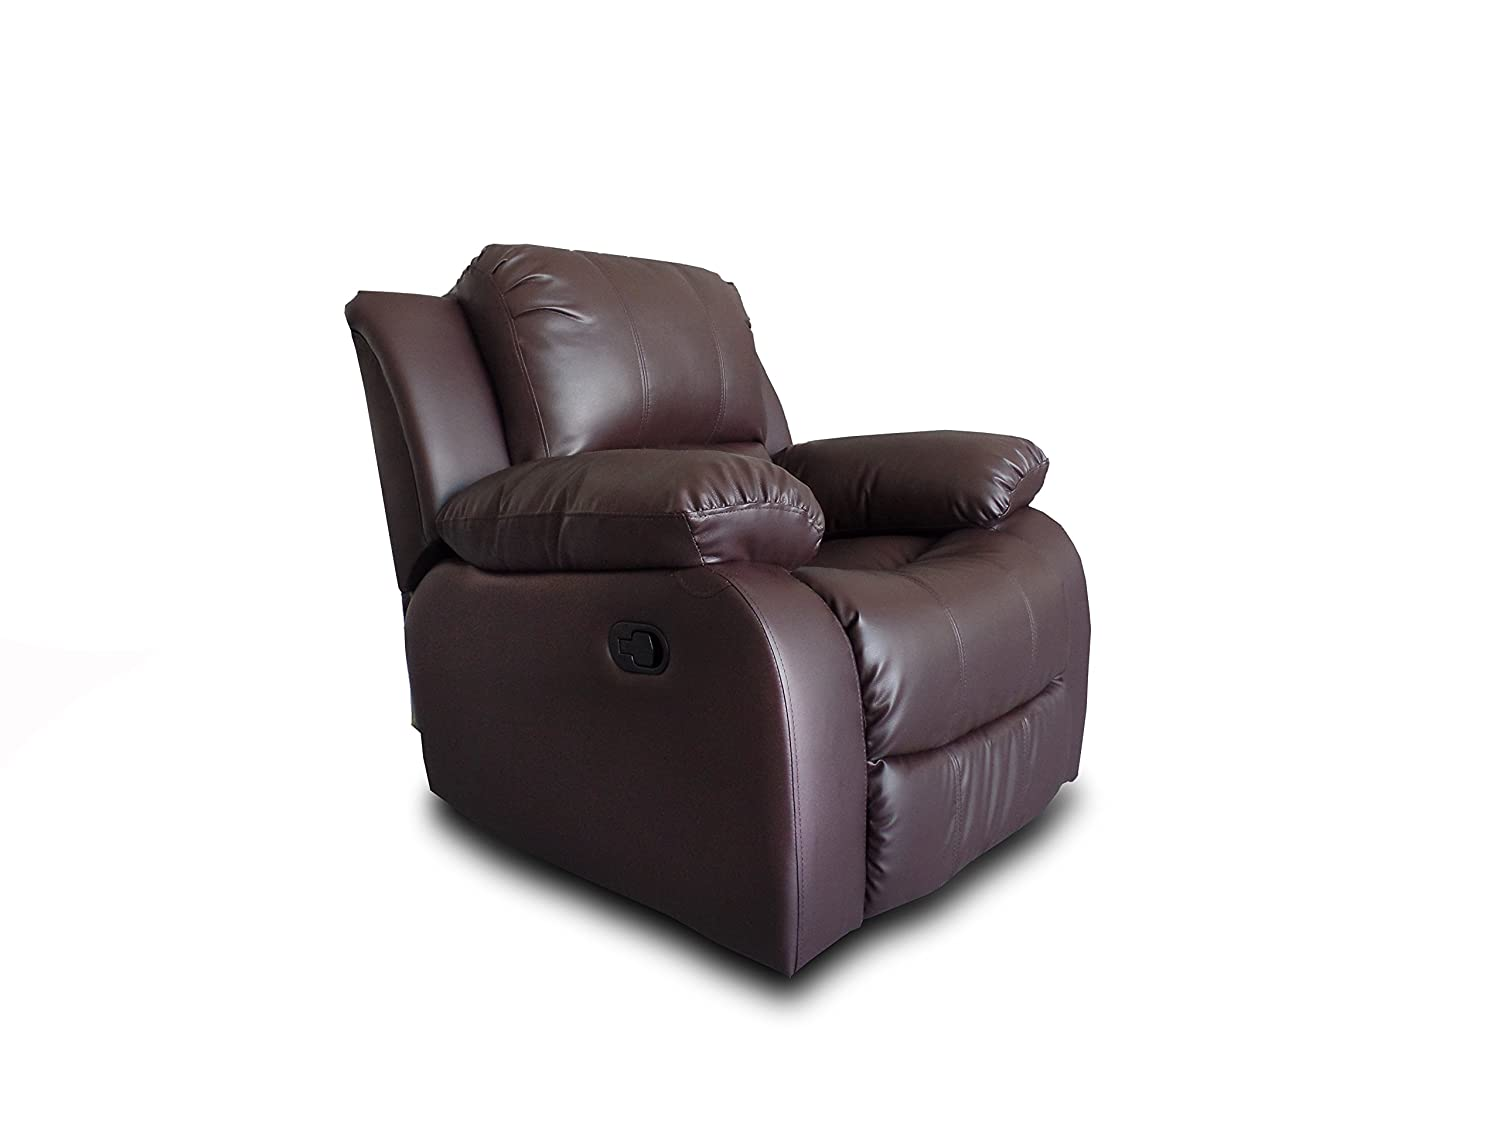 Amazon.com Bonded Leather Overstuffed Recliner Chair Colors Brown Black (Brown) Kitchen u0026 Dining  sc 1 st  Amazon.com & Amazon.com: Bonded Leather Overstuffed Recliner Chair Colors Brown ... islam-shia.org